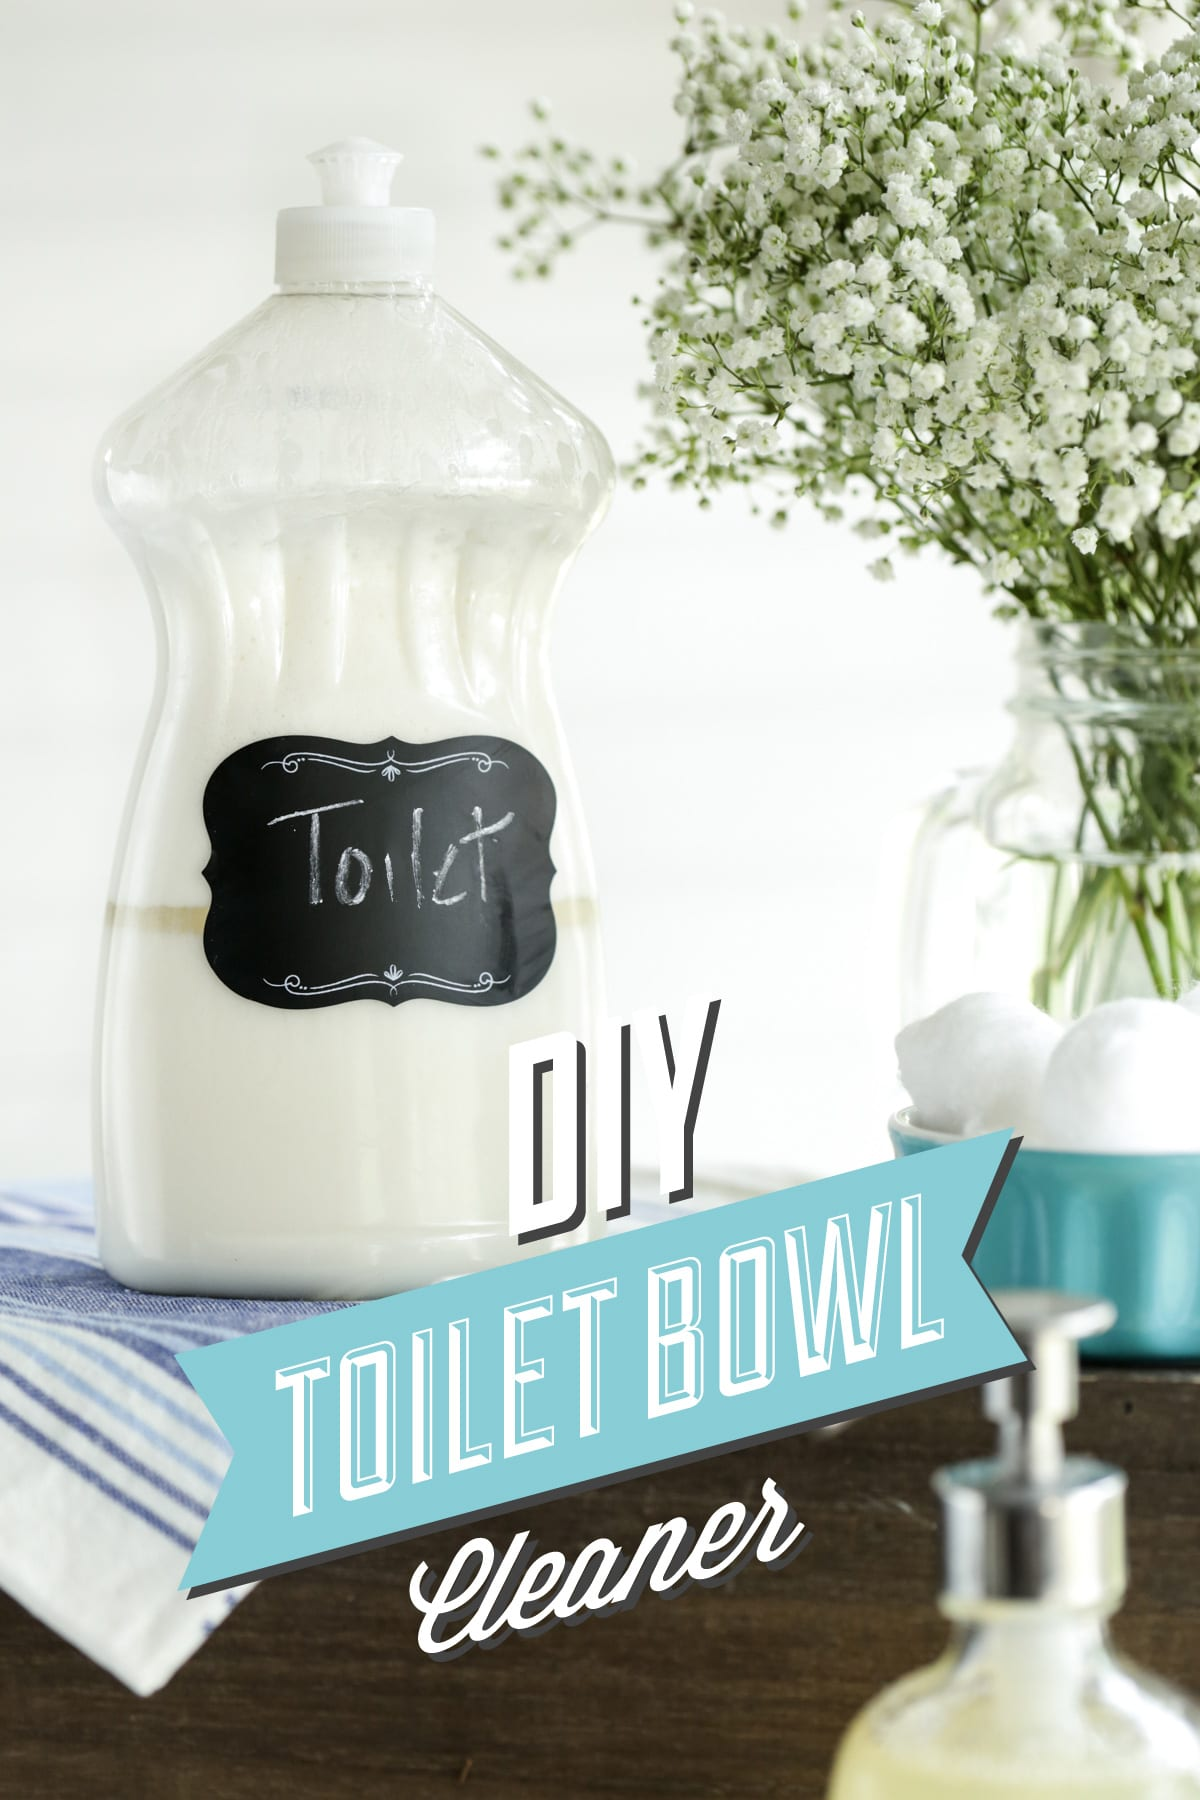 diy toilet bowl cleaner - live simply